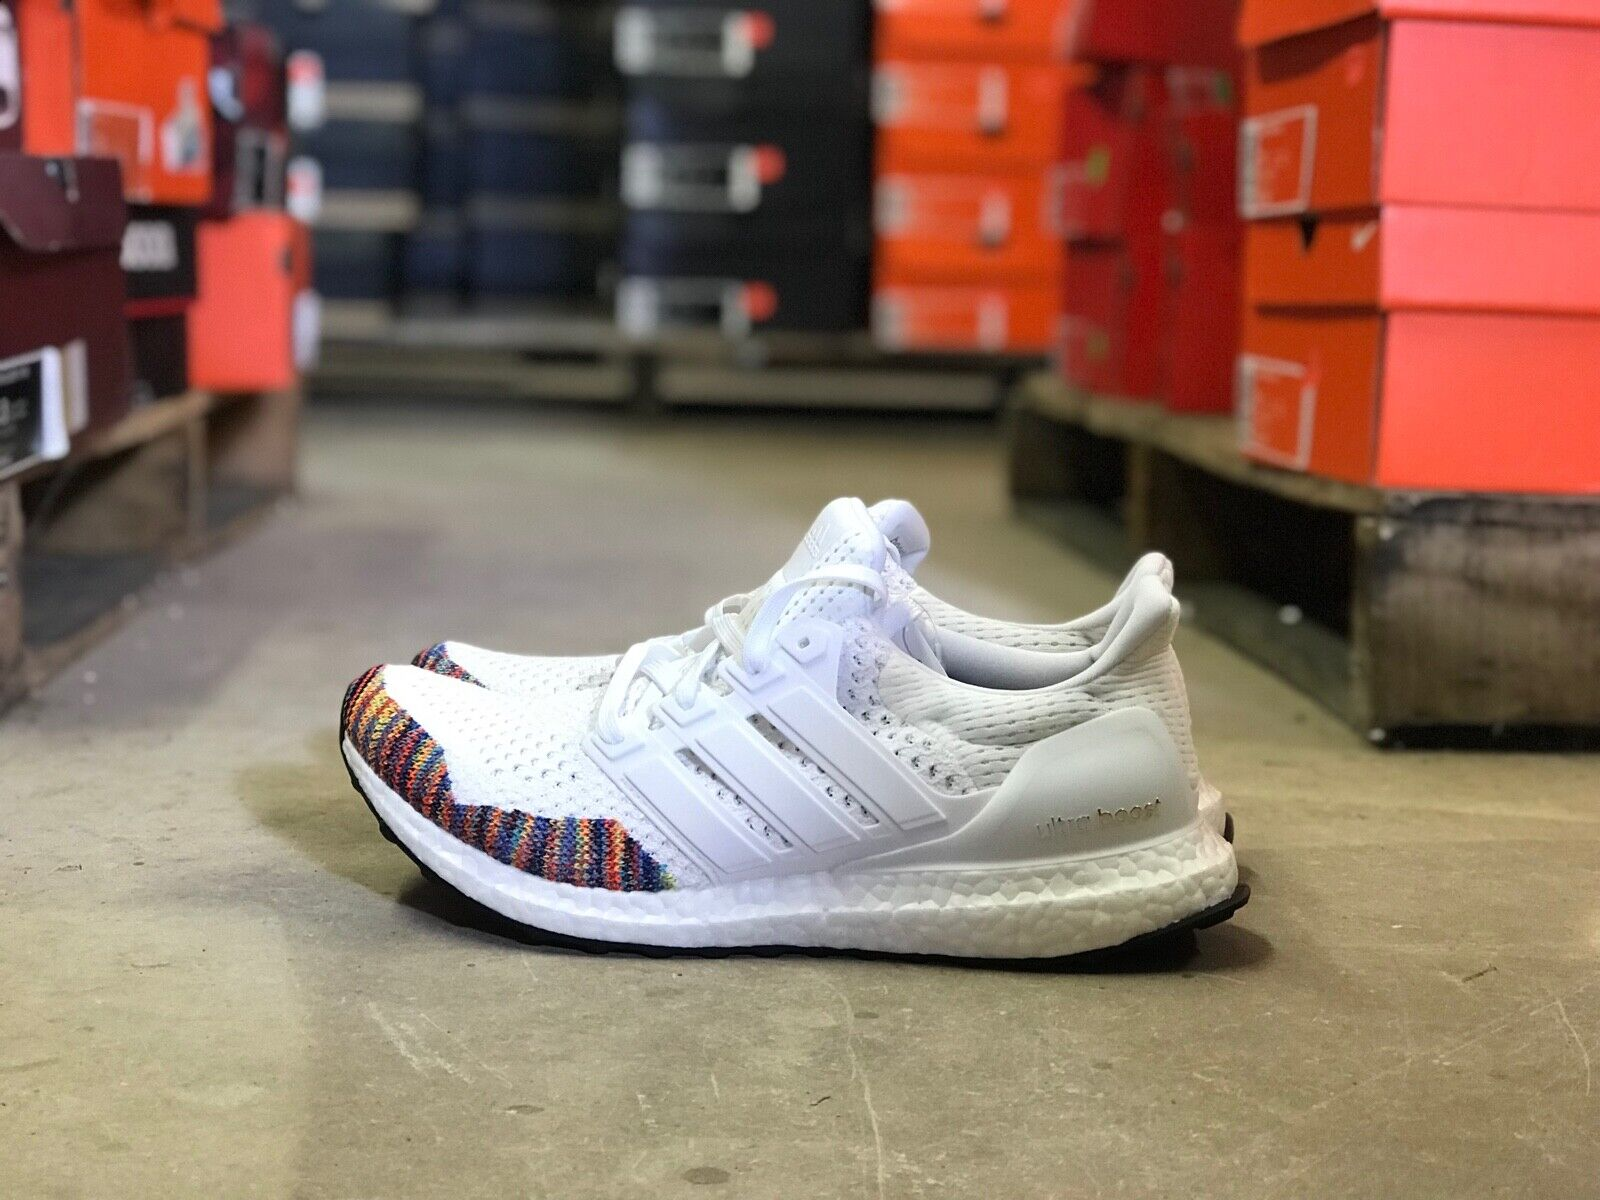 Adidas UltraBOOST LTD Limited Running Running Running shoes